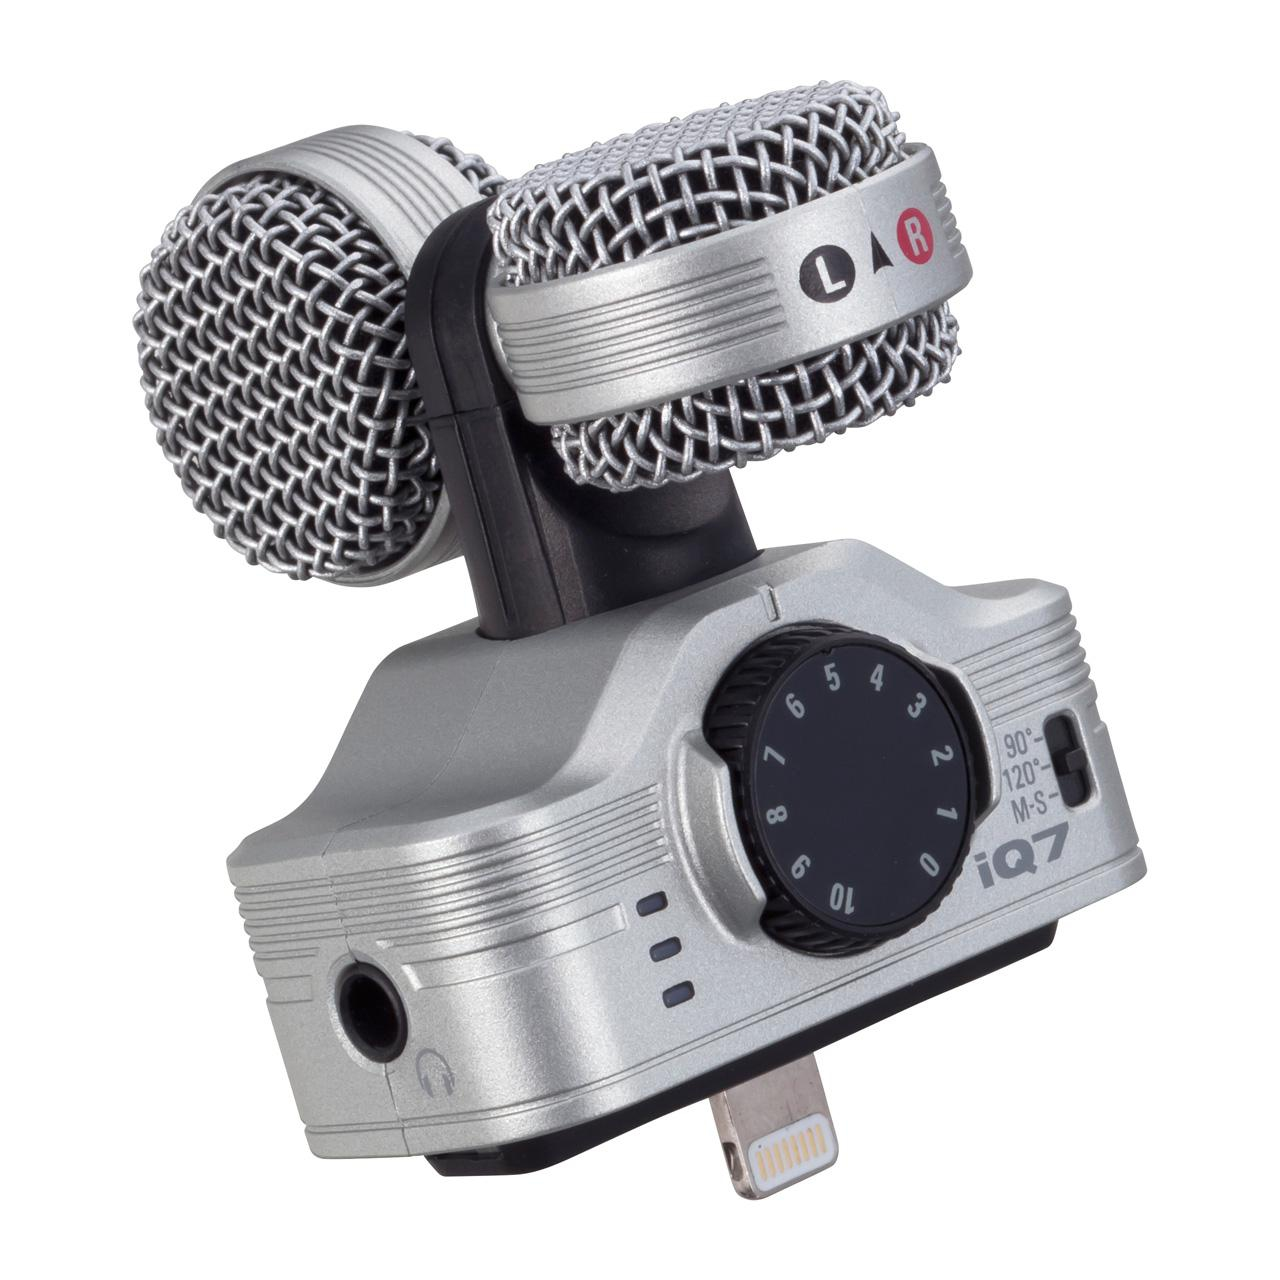 Zoom Iq7 Recorders